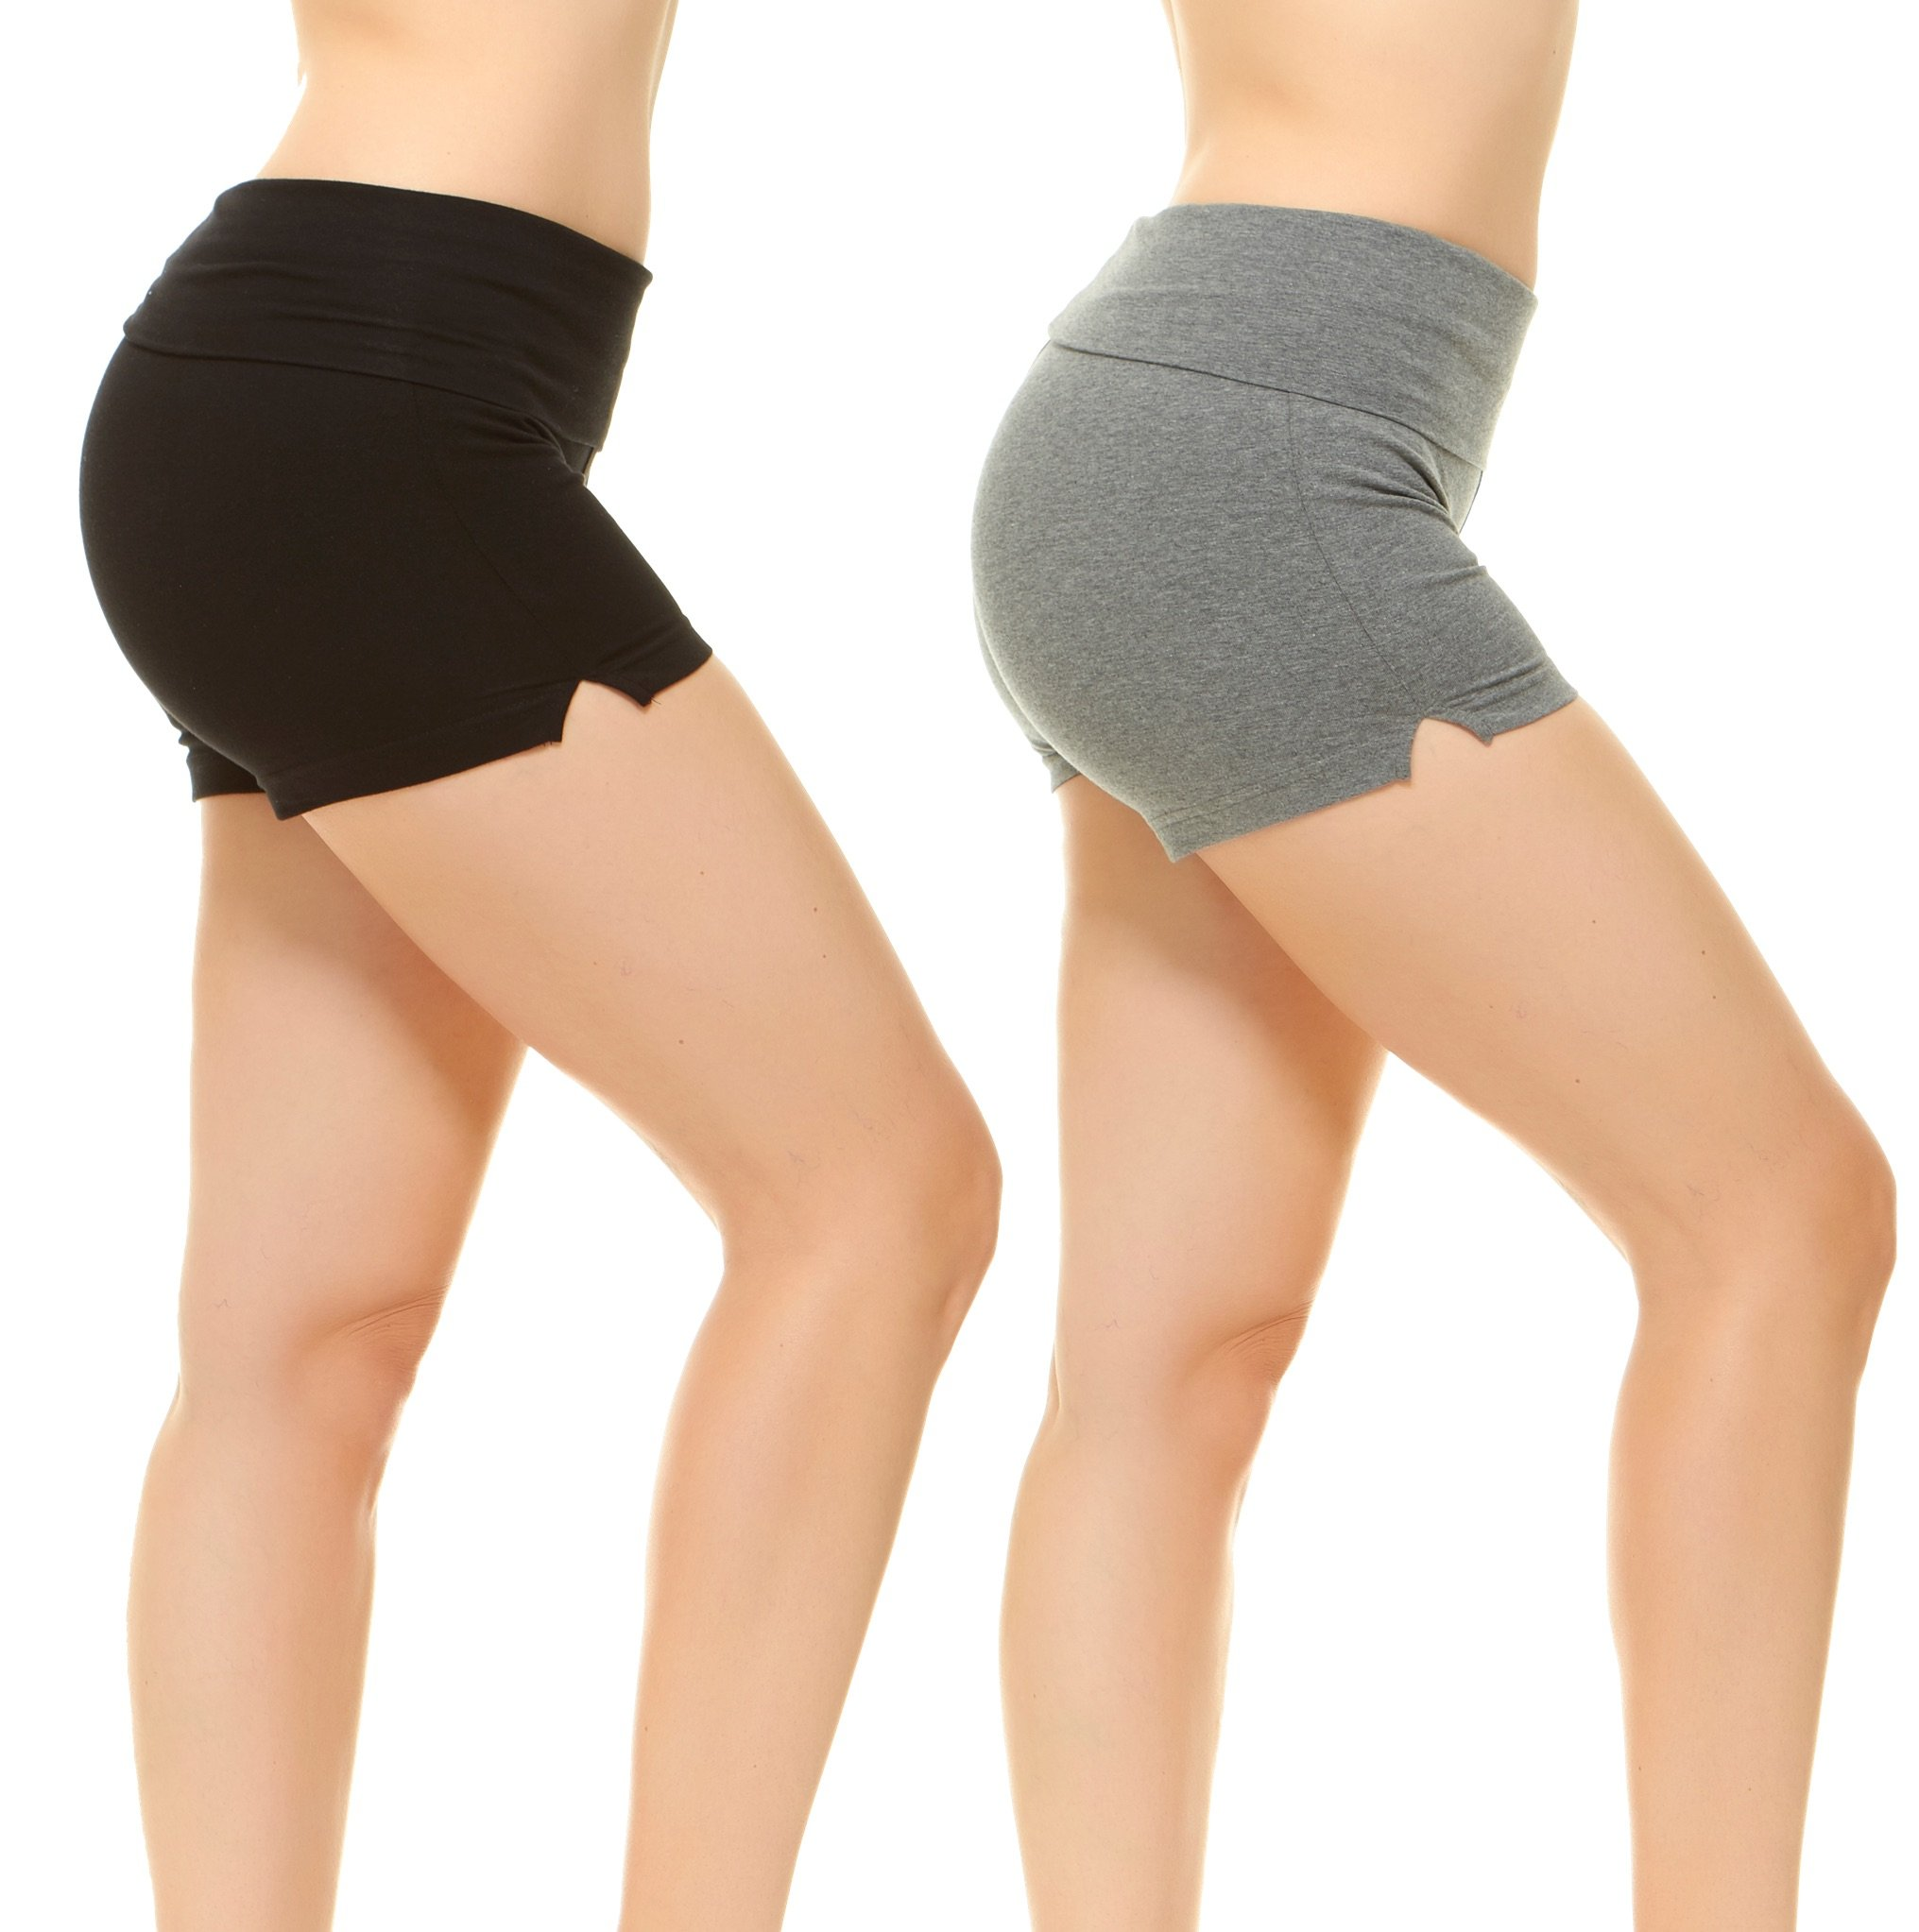 Fold-Over Waistband Stretchy Cotton-Blend Yoga Shorts Black and Grey M